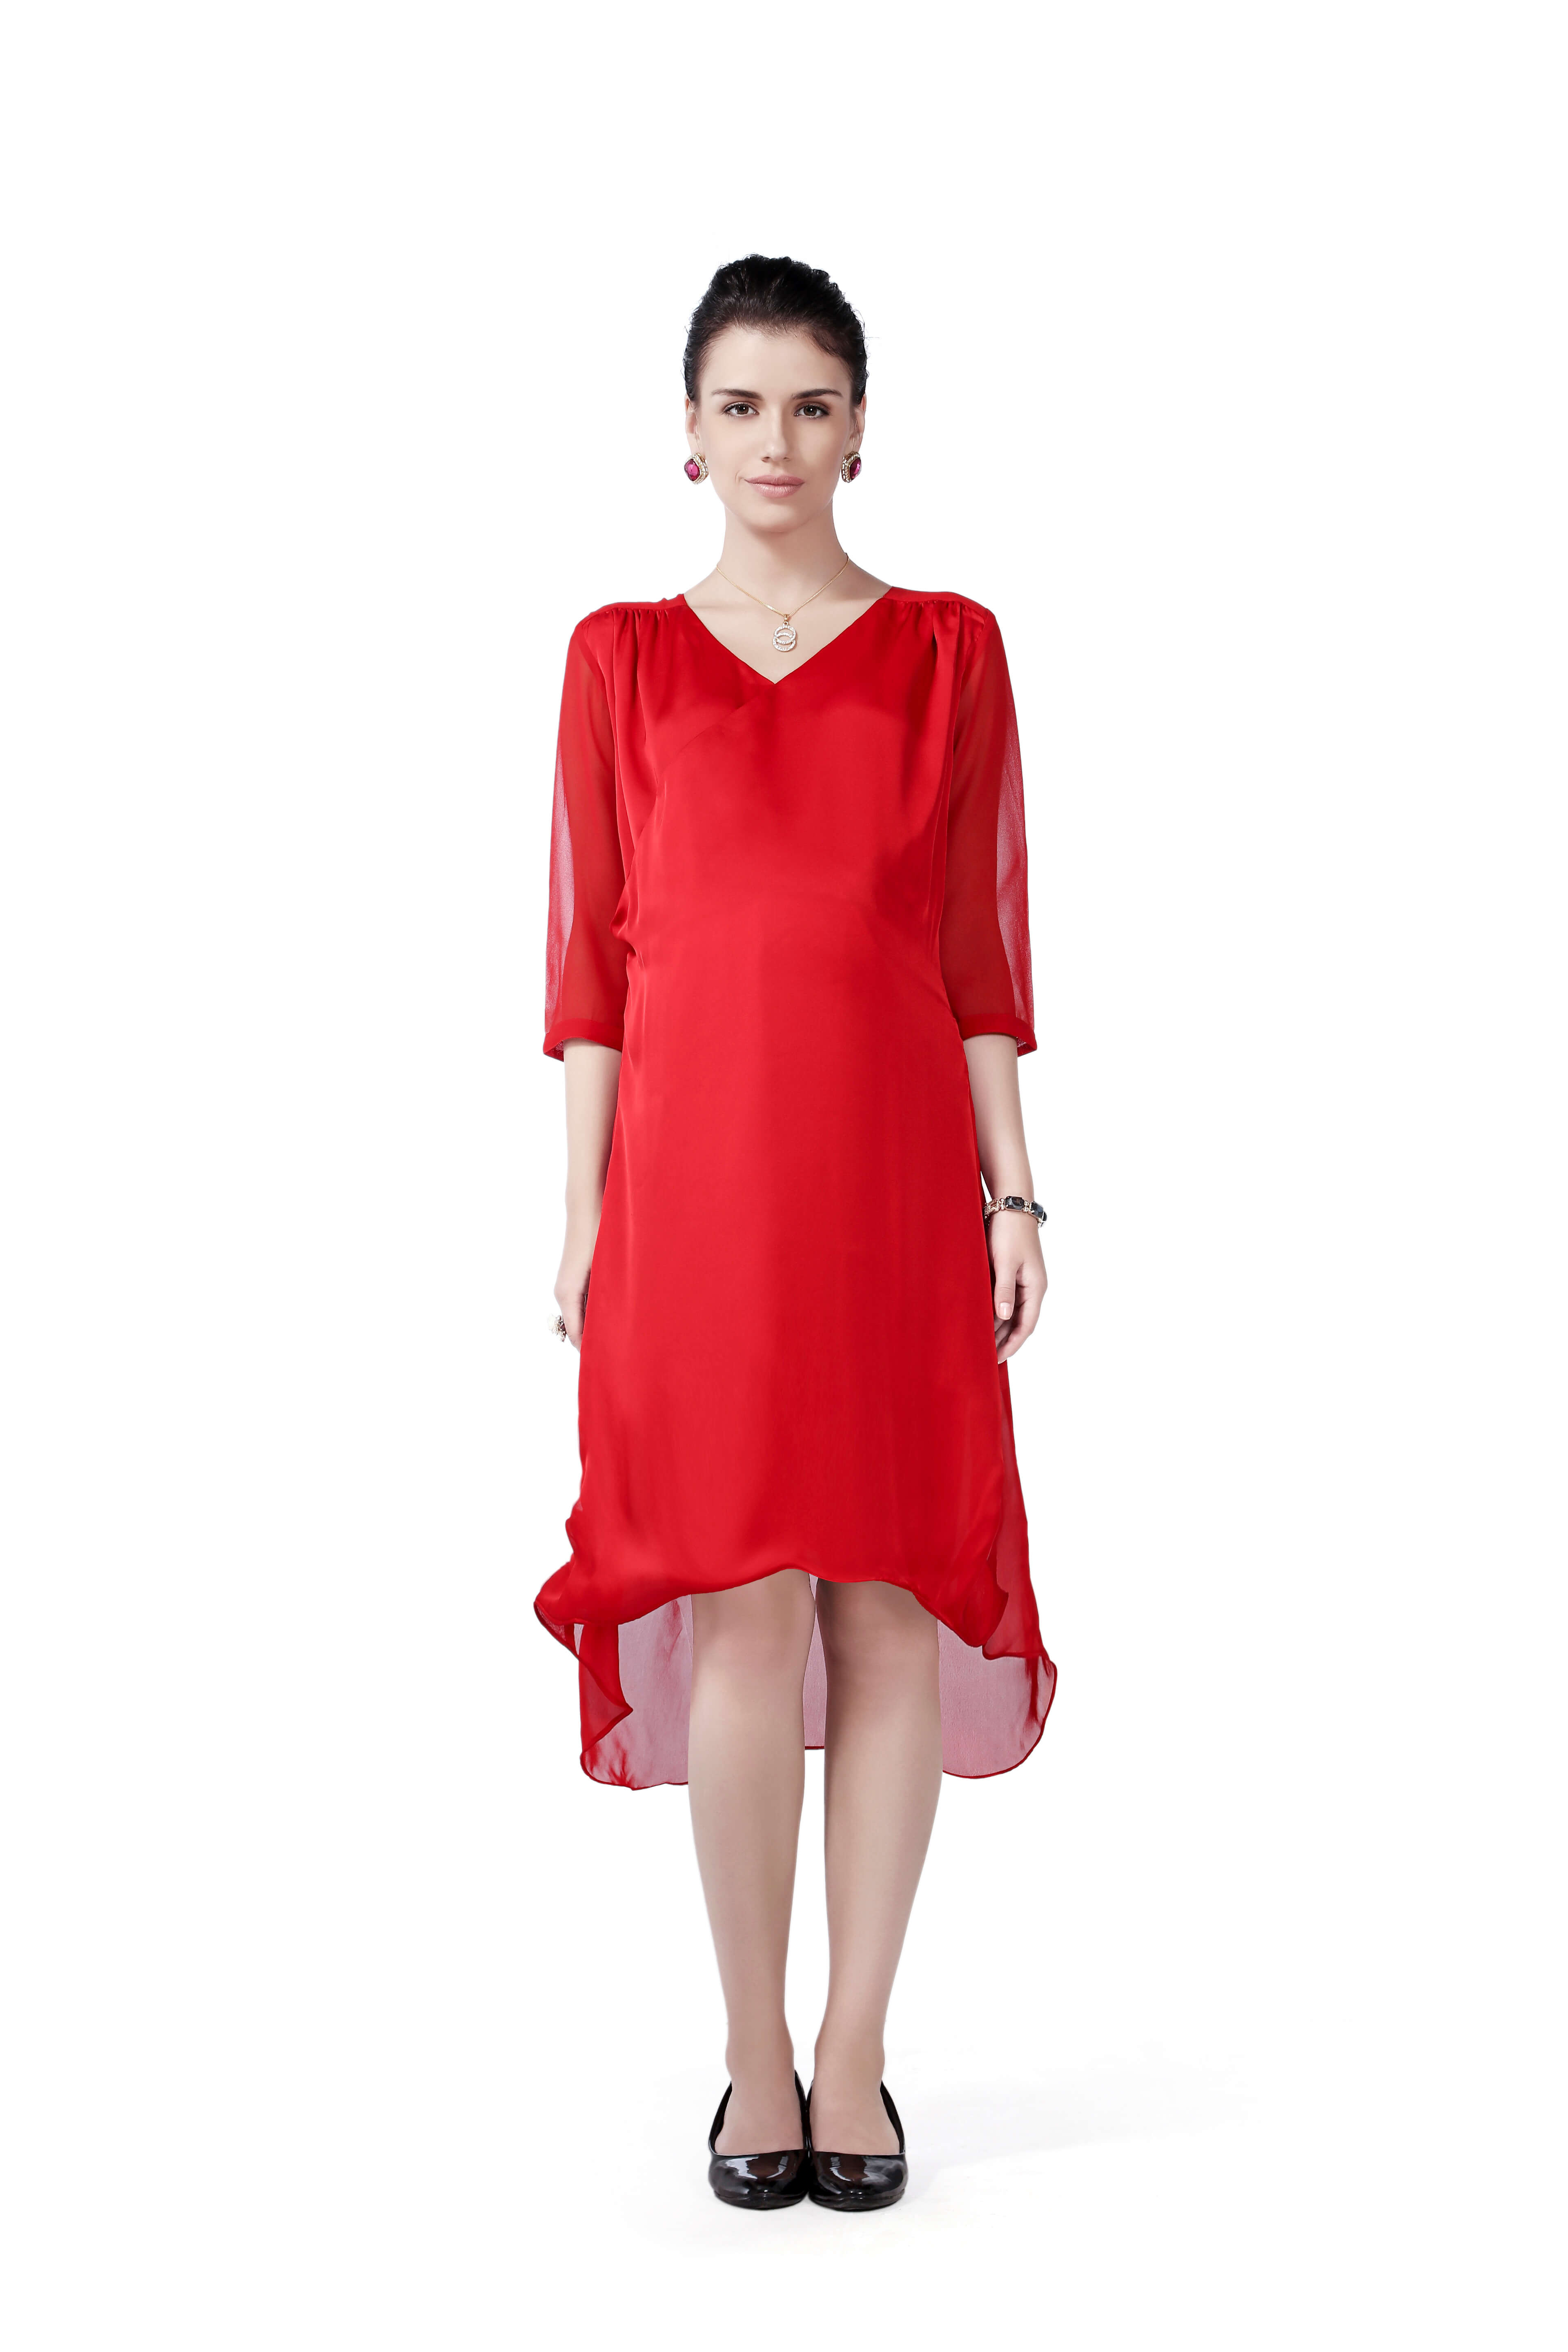 House of napius maternity dress red fashion mumz house of napius maternity dress red ombrellifo Images